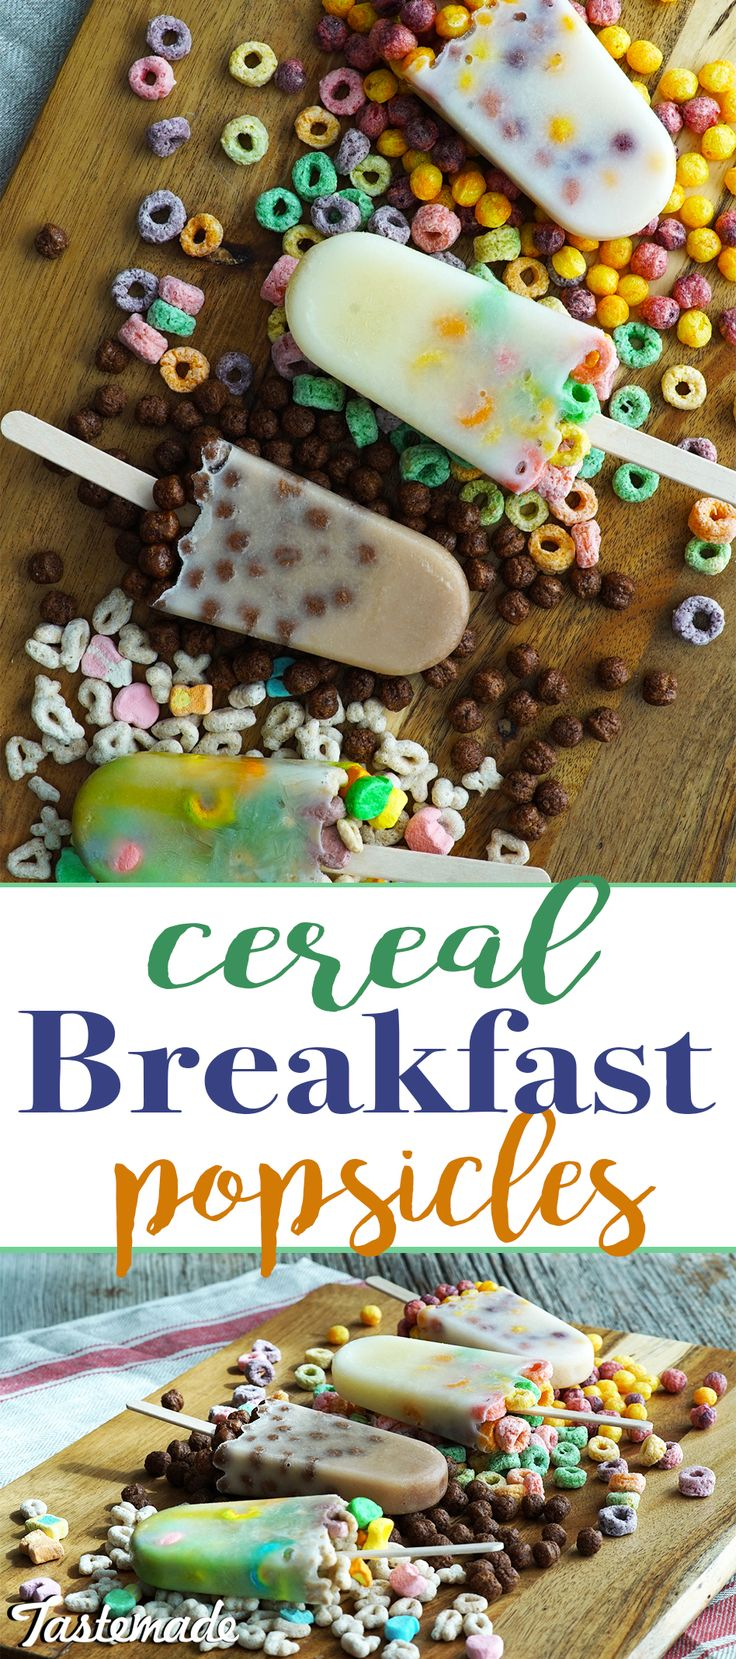 Turn your favorite childhood cereal into the perfect on-the-go treat.